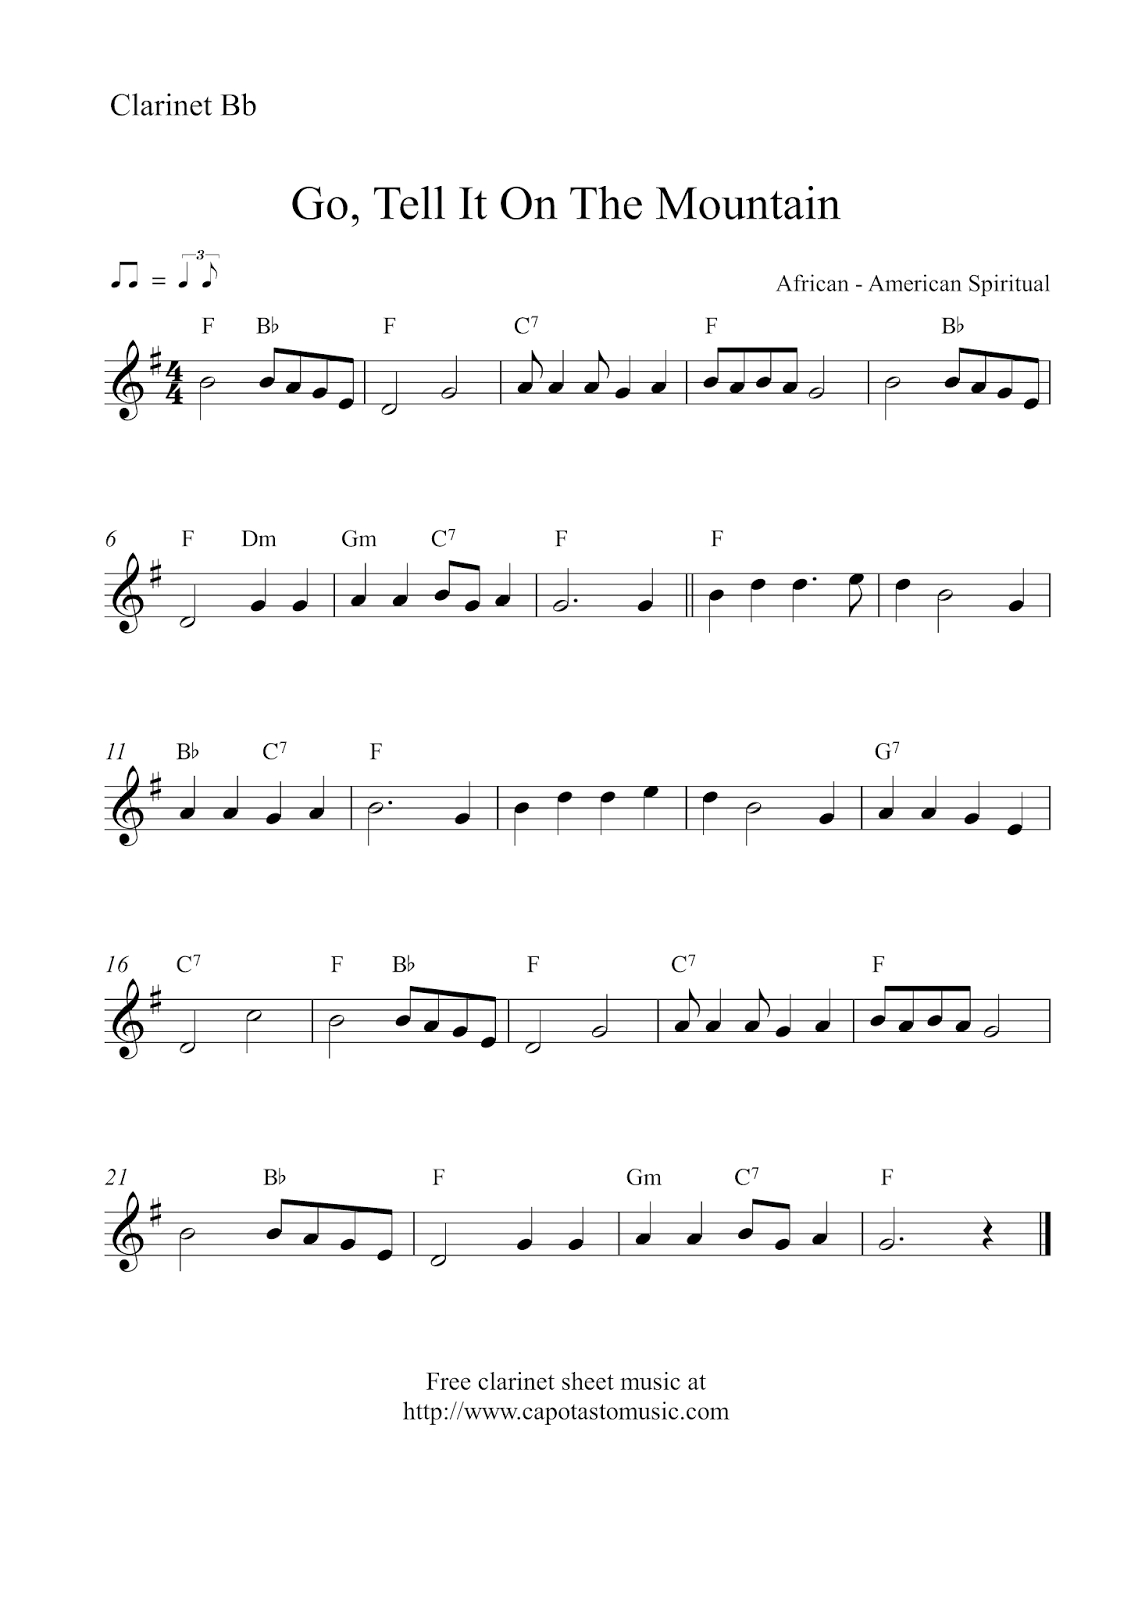 Free Christmas Clarinet Sheet Music - Go, Tell It On The Mountain - Free Printable Christmas Sheet Music For Clarinet